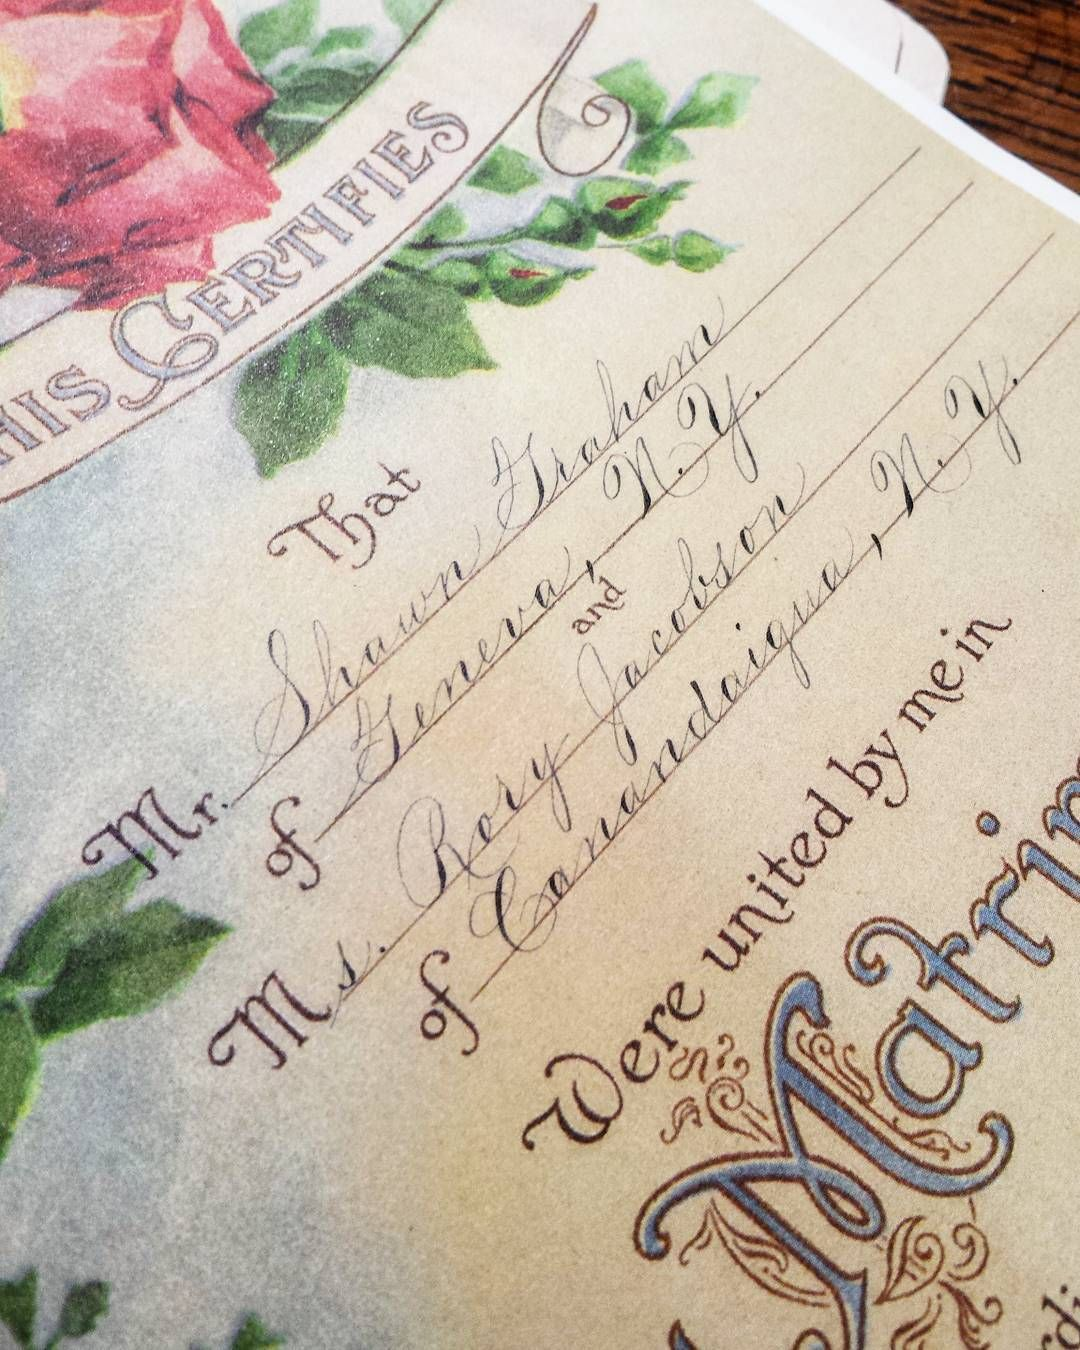 Flowercityletters Calligraphy Marriage Certificate Rochestet Ny